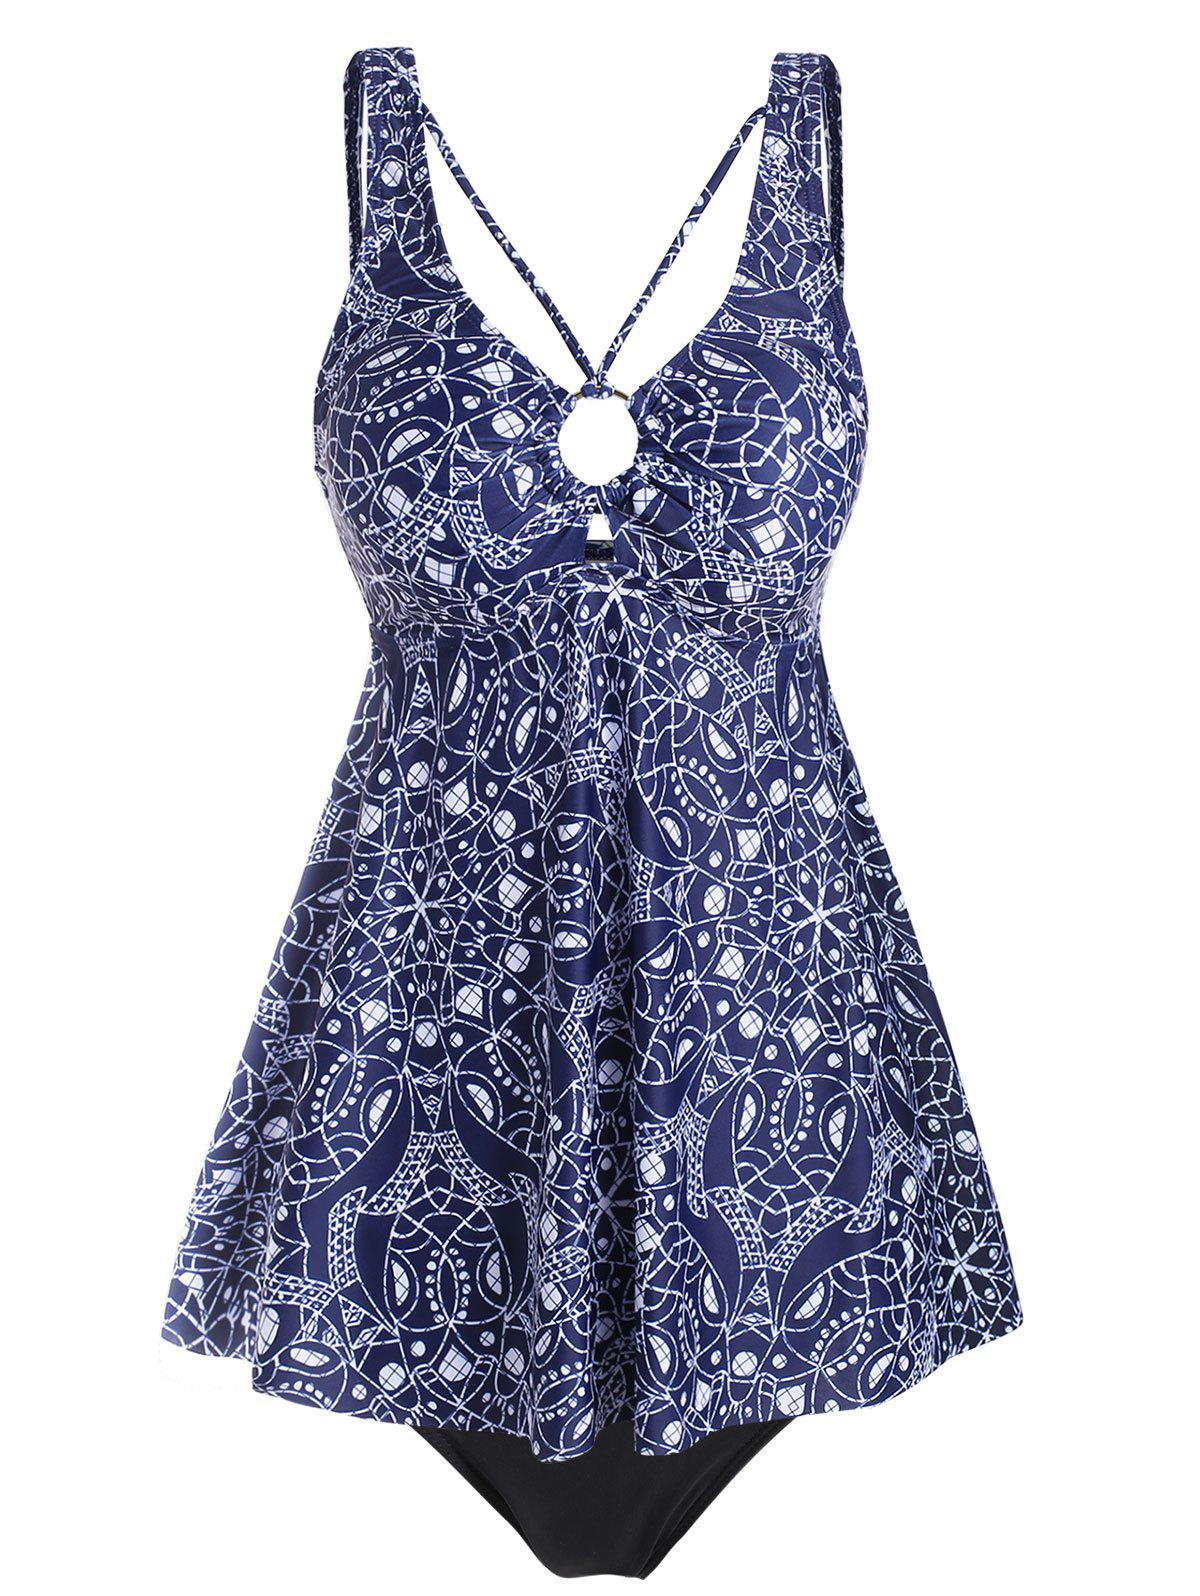 Chic Snakeskin Printed Strappy O Ring Tankini Swimsuit